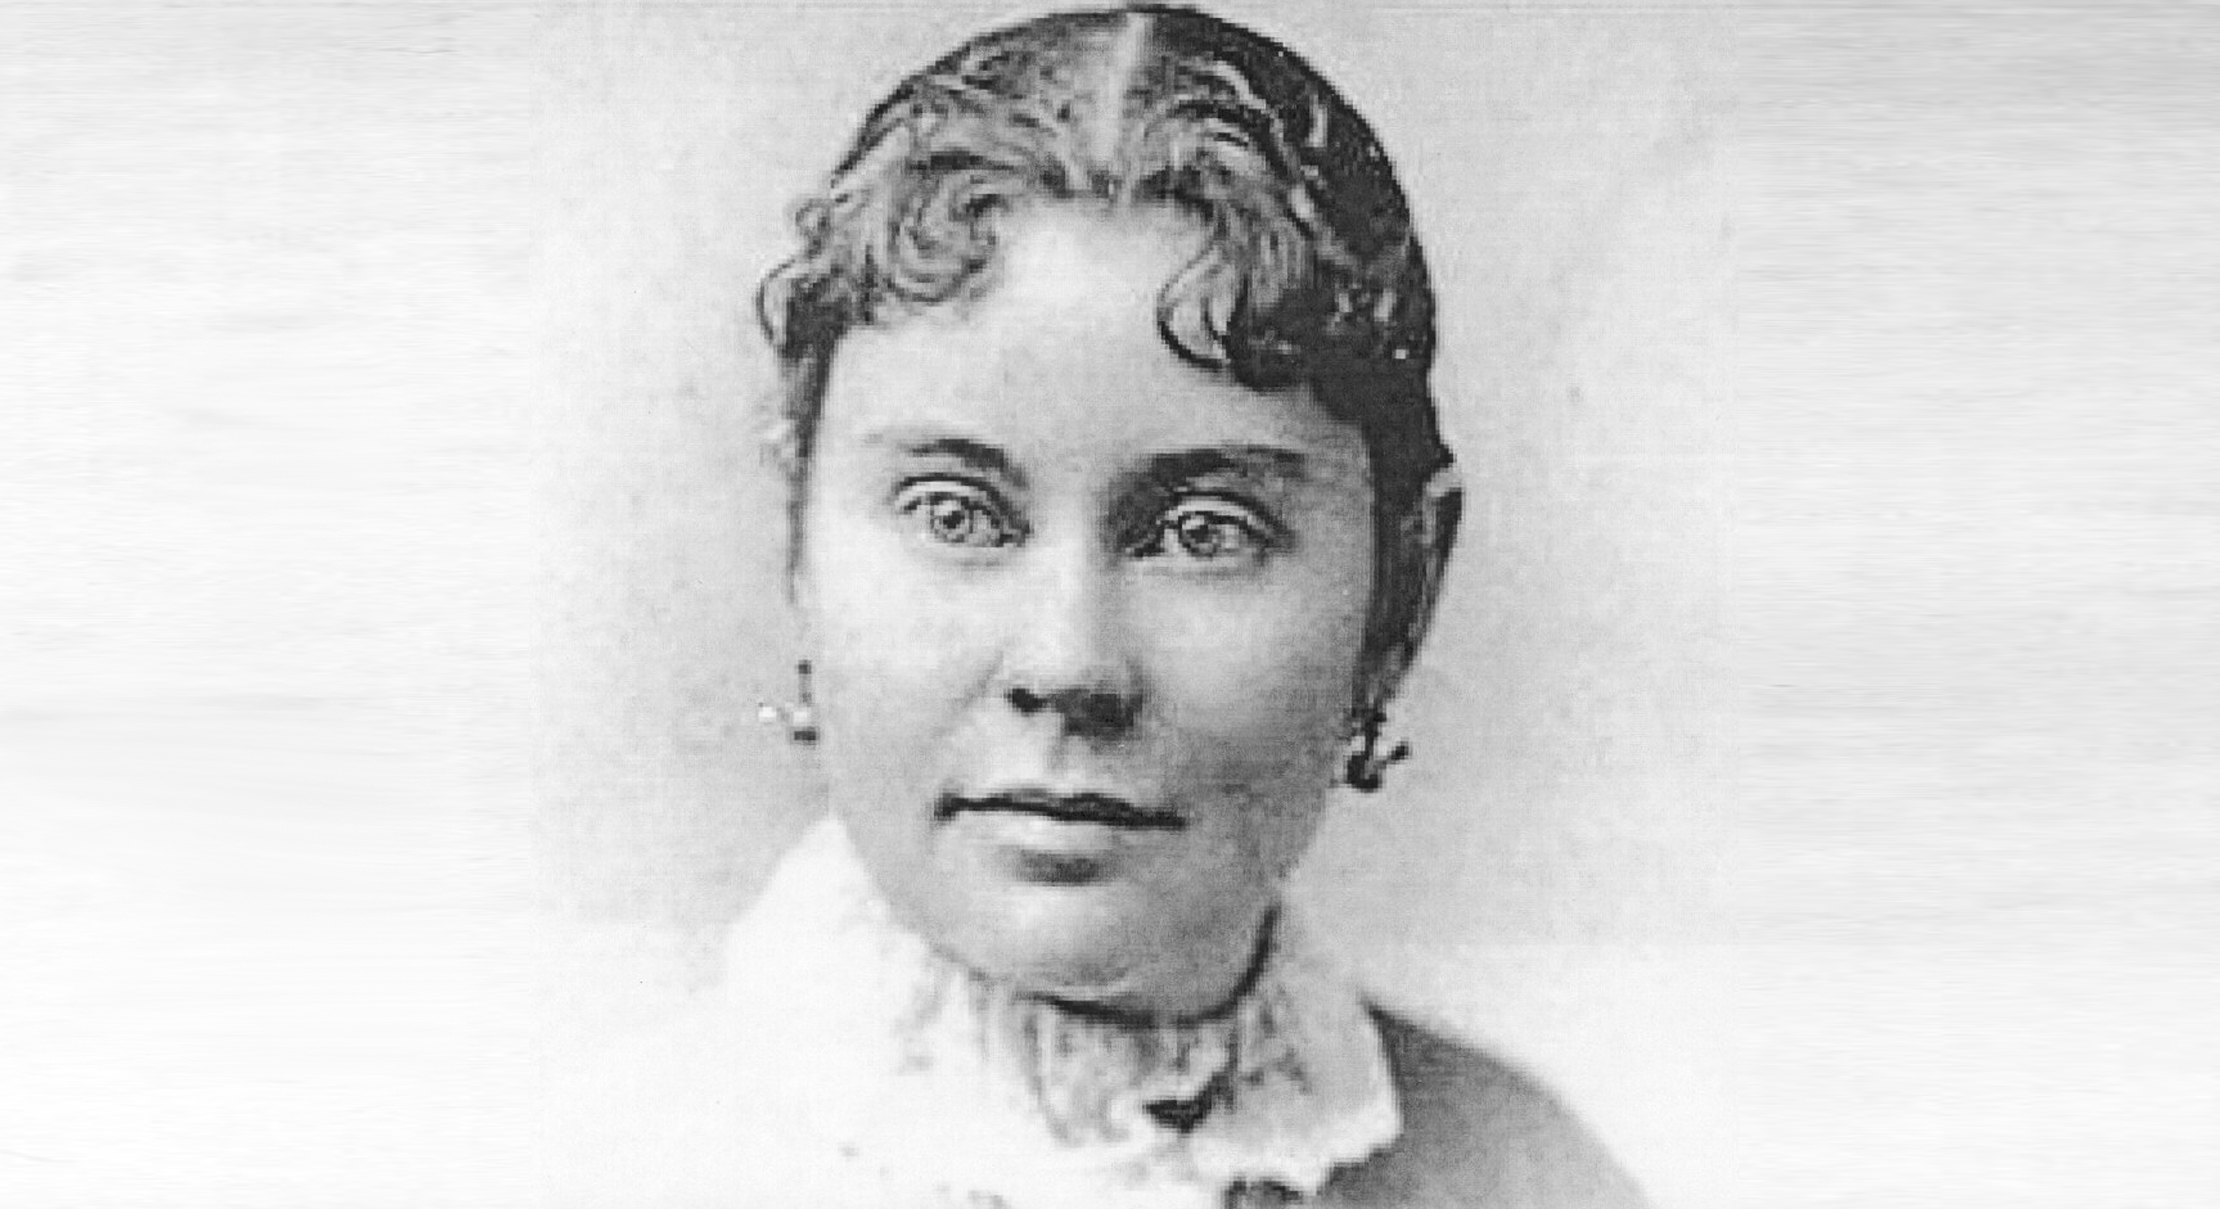 lizzie borden murders The borden murders: lizzie borden and the trial of the century by sarah miller is non-fiction that reads like a thriller following the brutal murders of andrew and abby borden and the subsequent trial of andrew's daughter lizzie borden, this book attempts to separate fact from sensationalized fiction and includes photos, newspaper clippings.